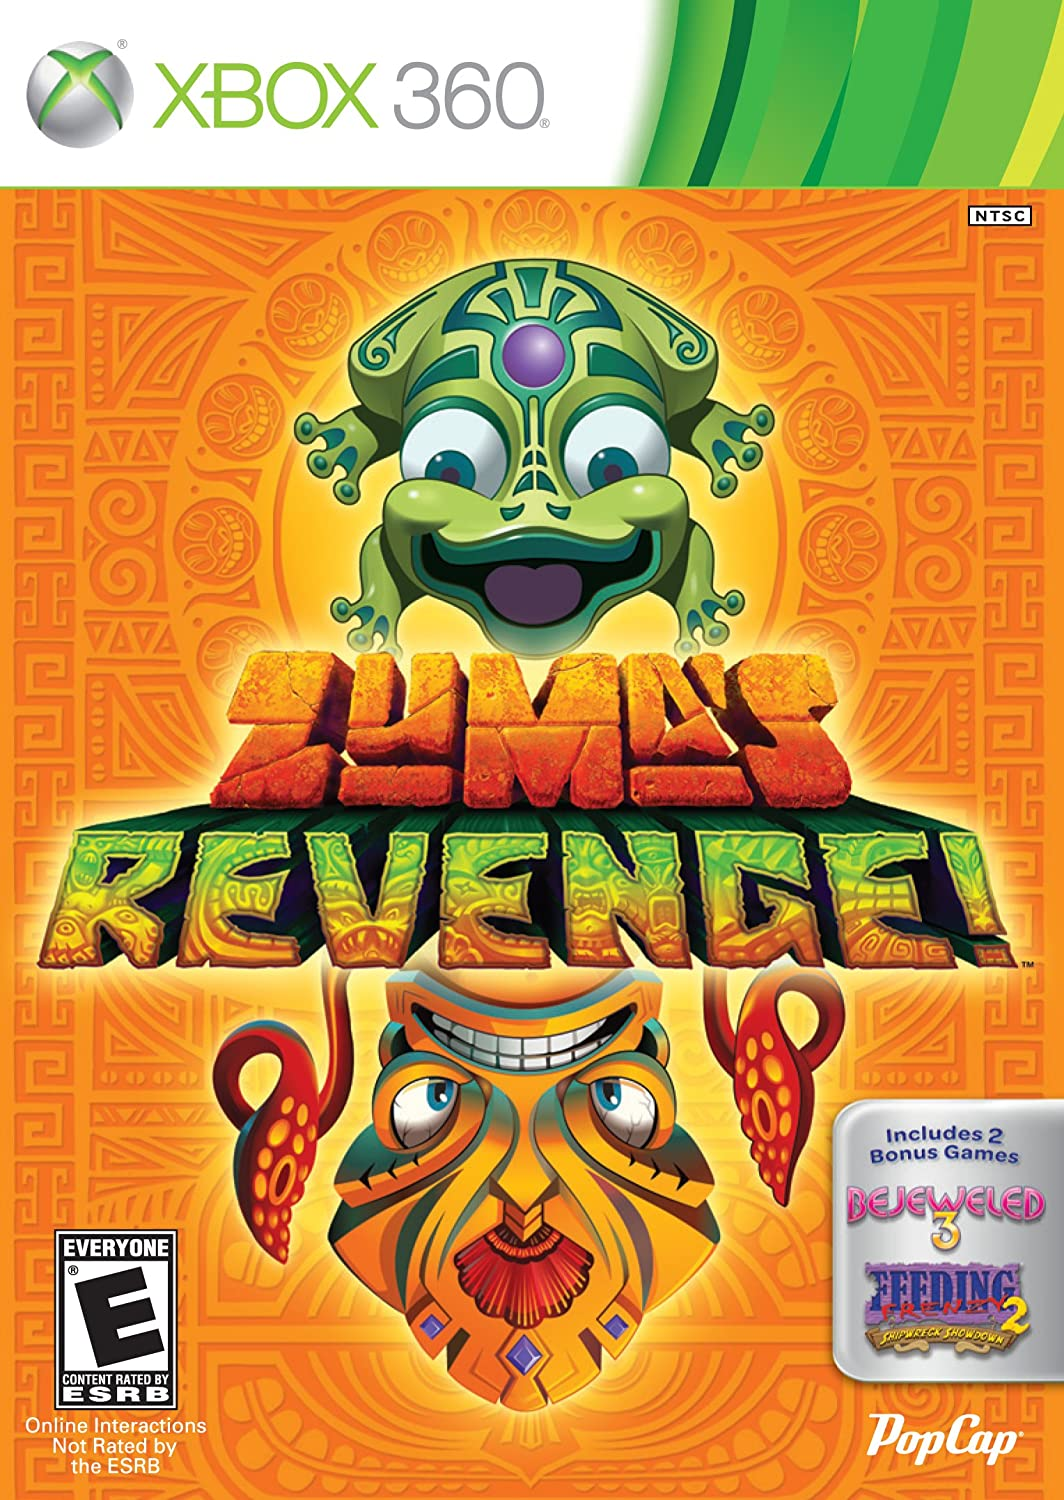 Color zuma game - Amazon Com Zuma S Revenge With Bejeweled 3 And Feeding Frenzy 2 Xbox 360 Video Games